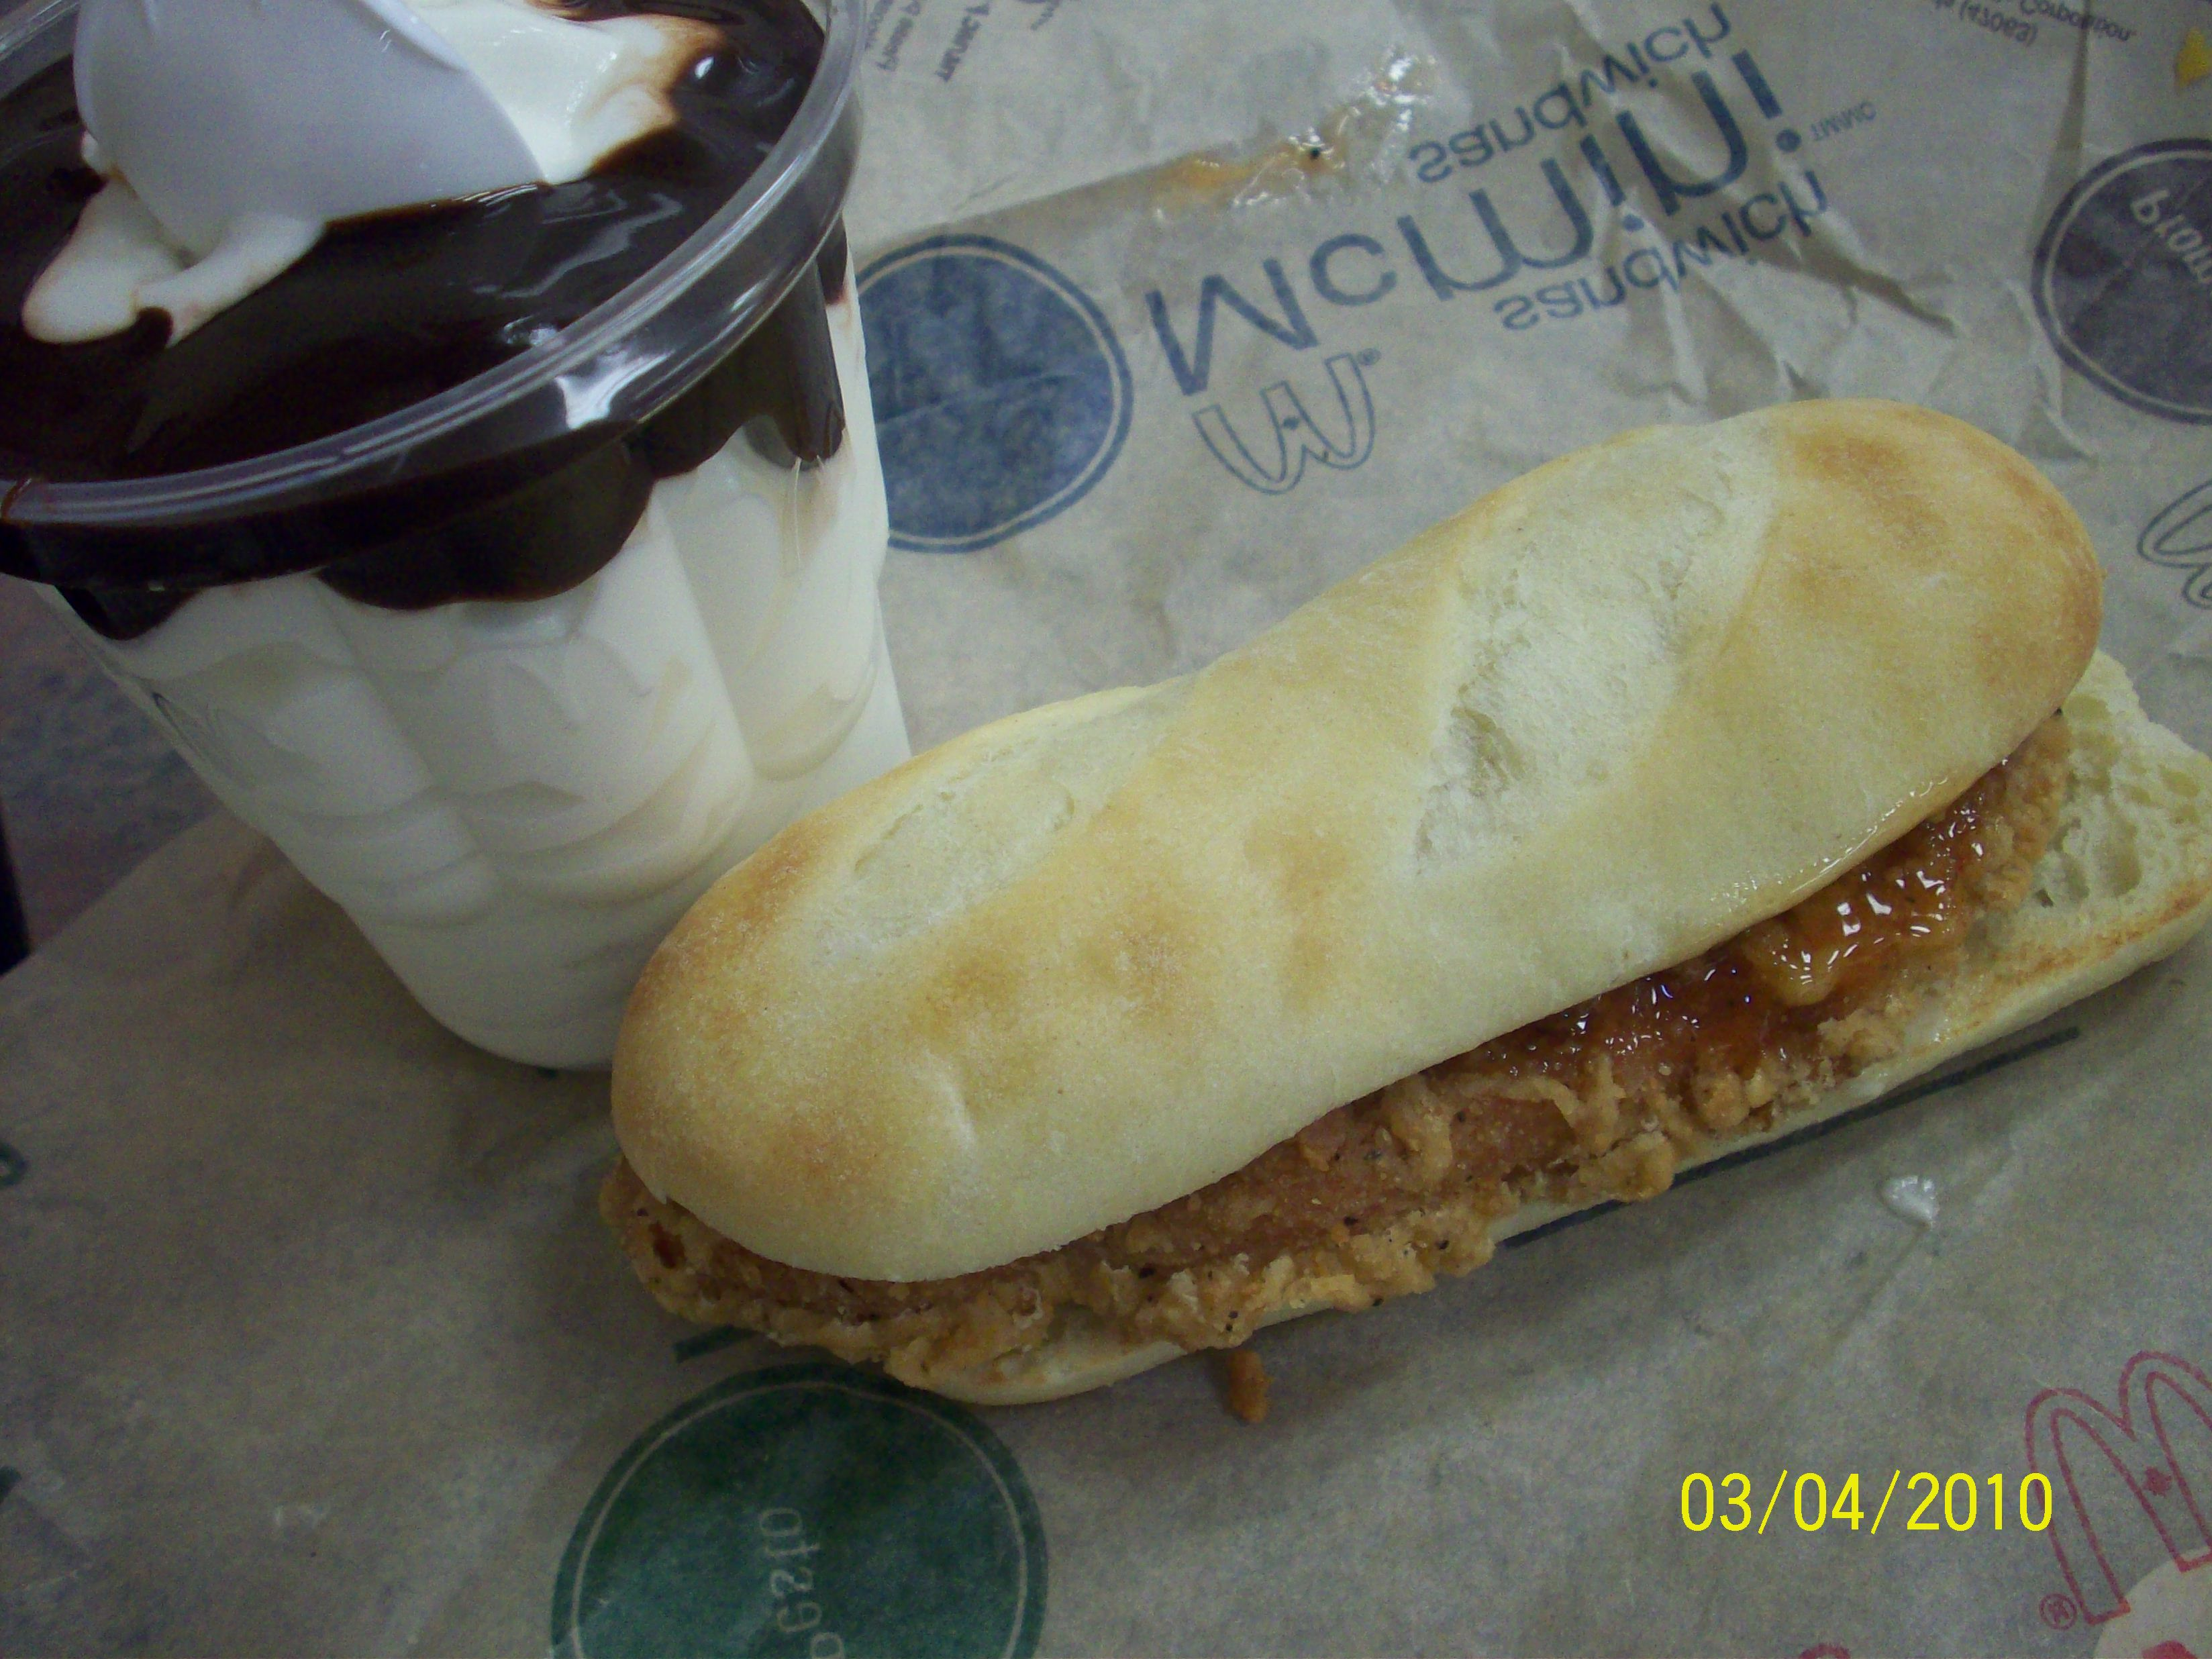 http://foodloader.net/cutie_2010-04-03_McMini_Chicken_Sandwich_with_Choco_Sundae.jpg